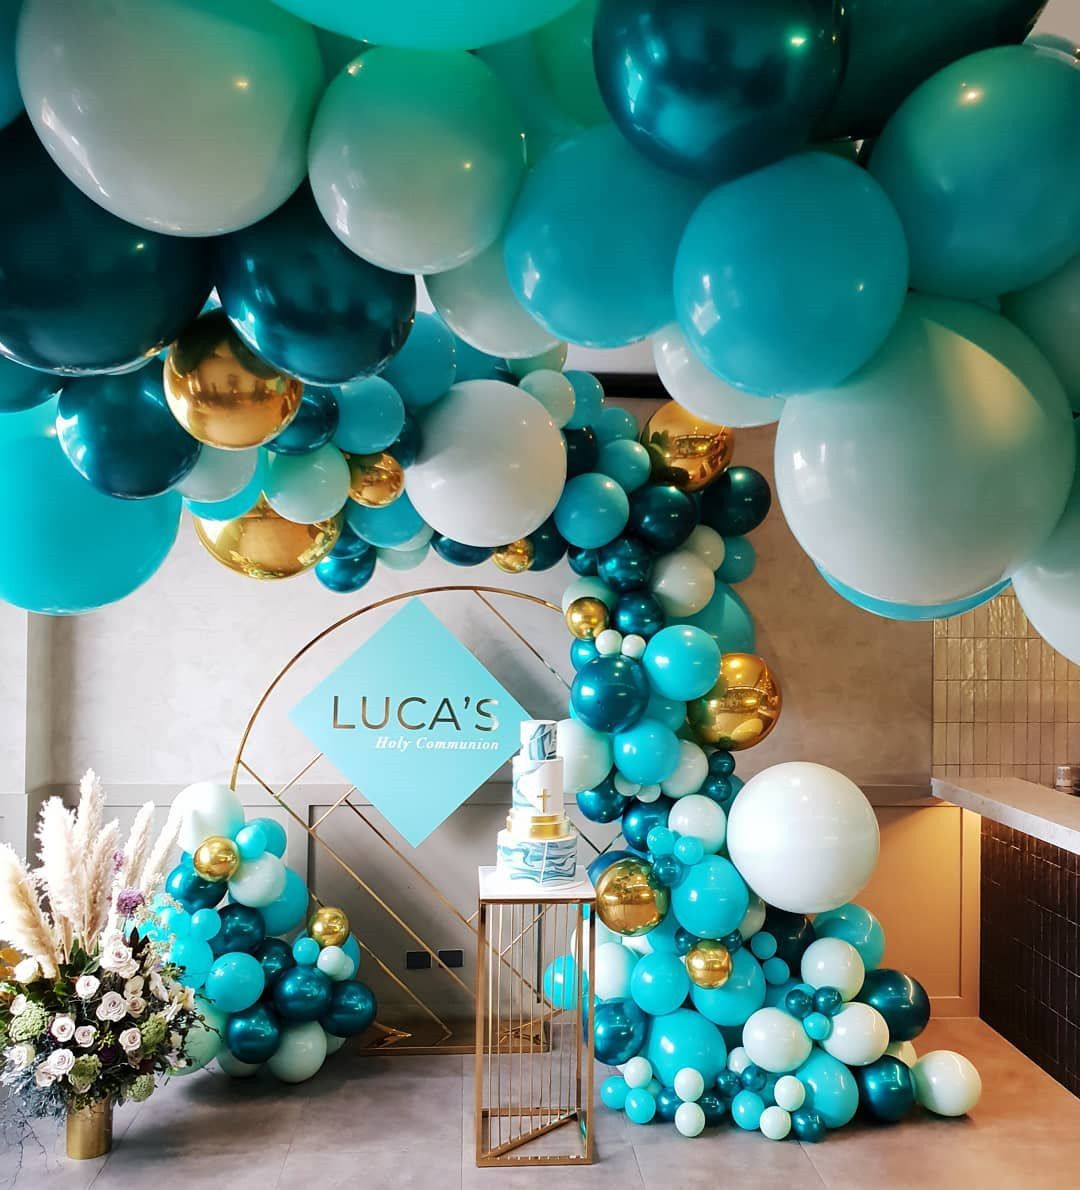 46 Awesome DIY Balloon Decor Ideas Inspirations for Your